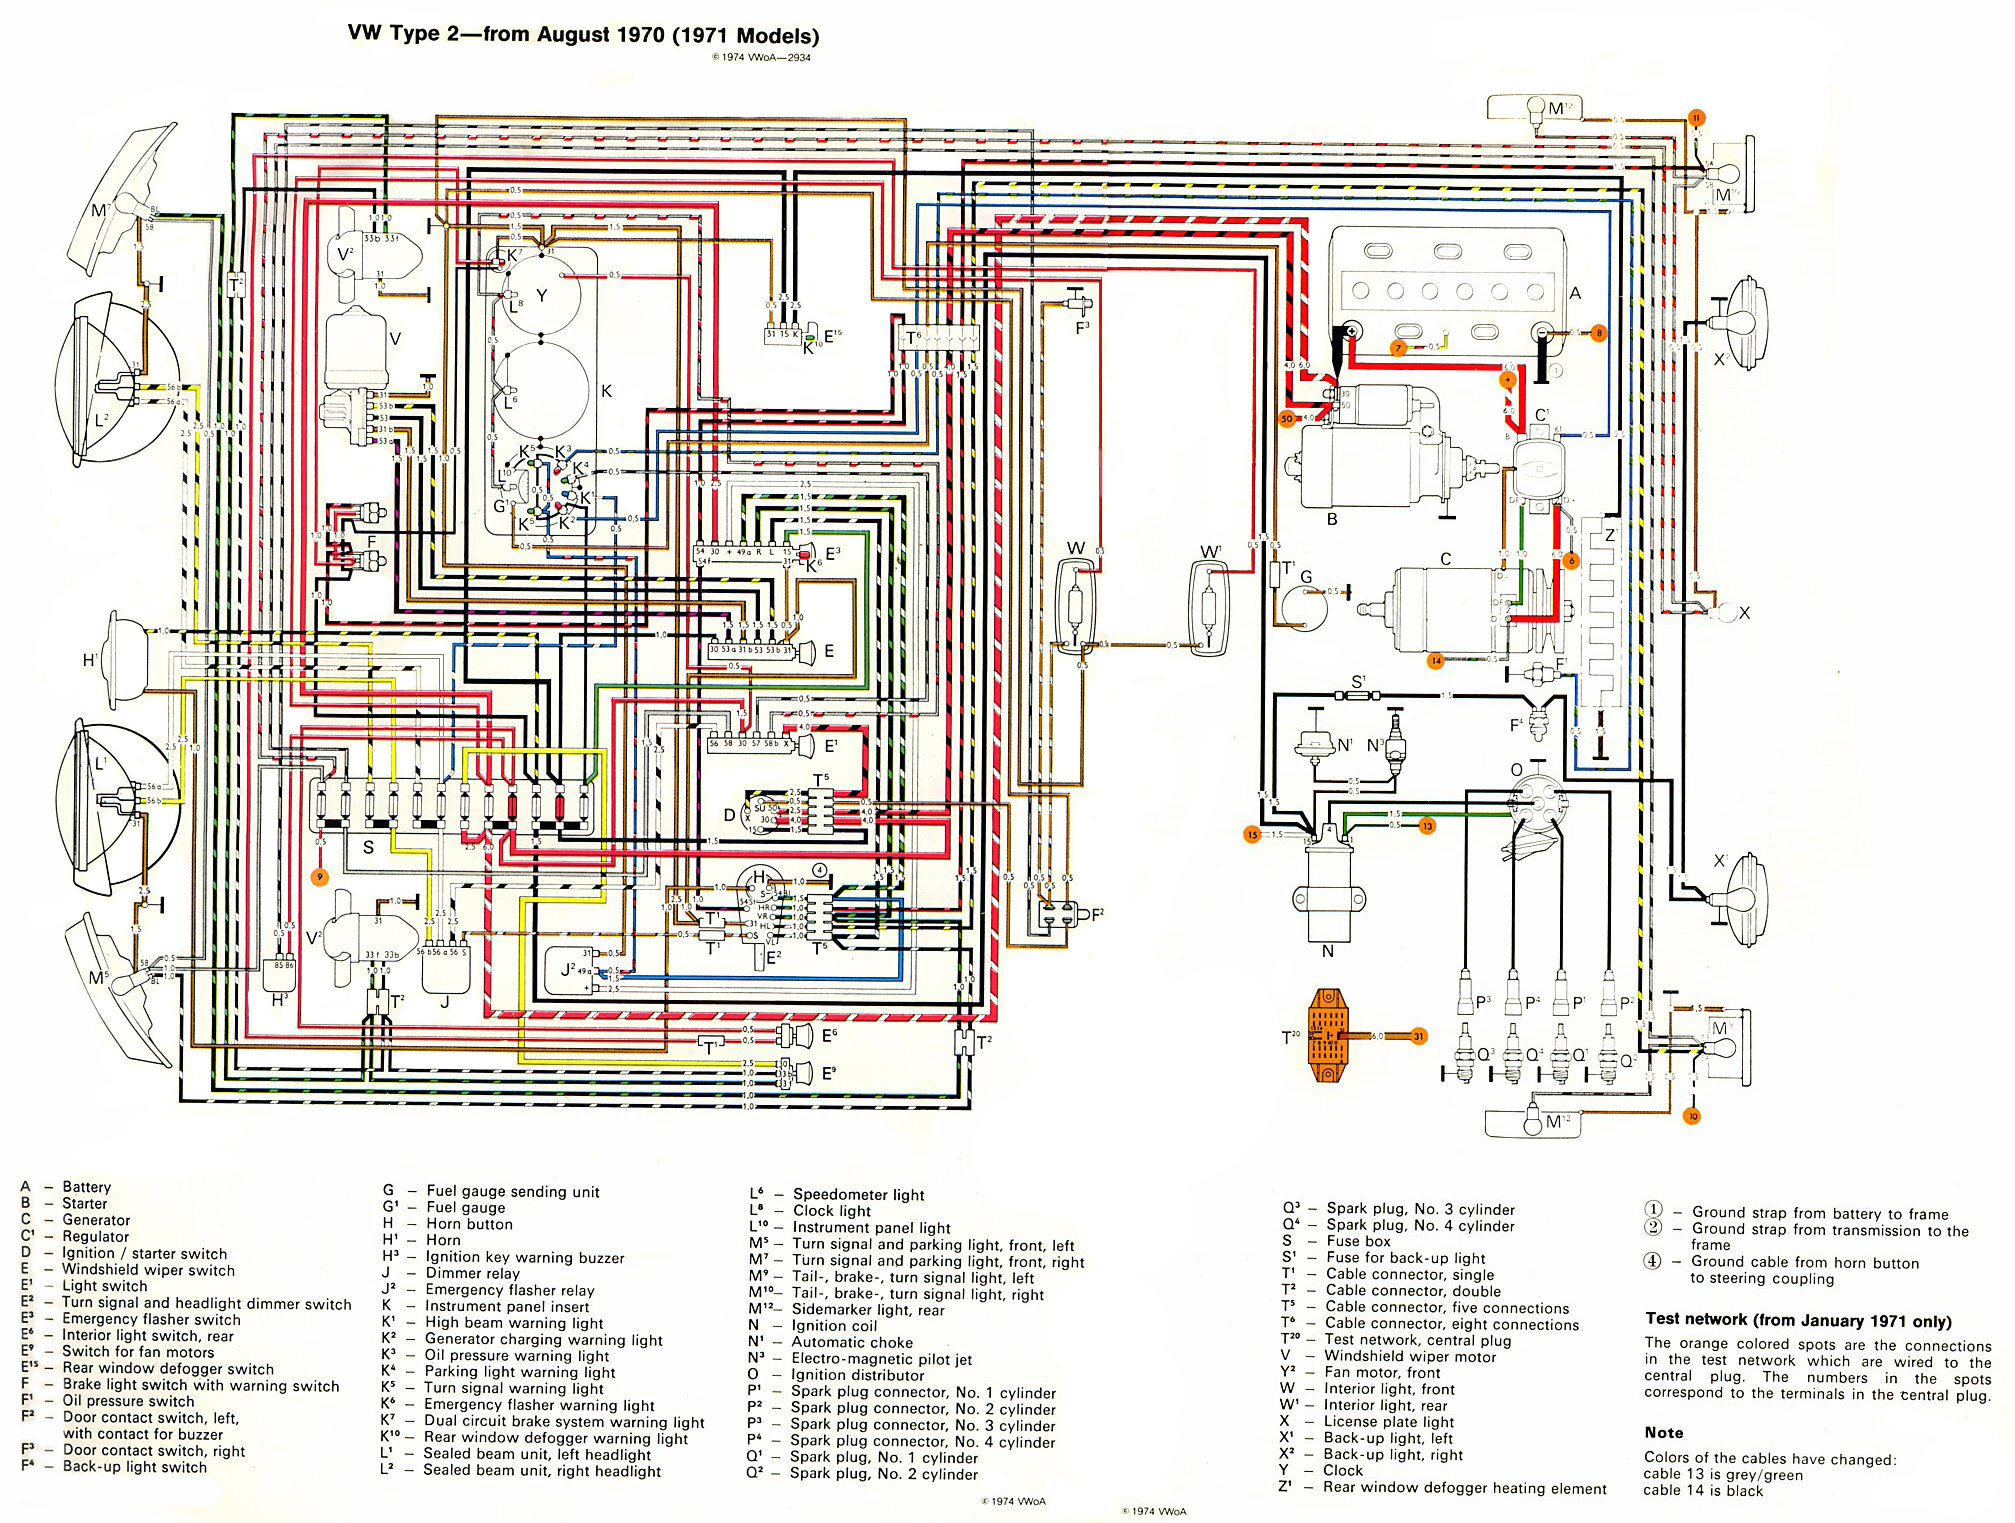 1960 Impala Horn Diagram Wiring Schematic - List of Wiring ... on